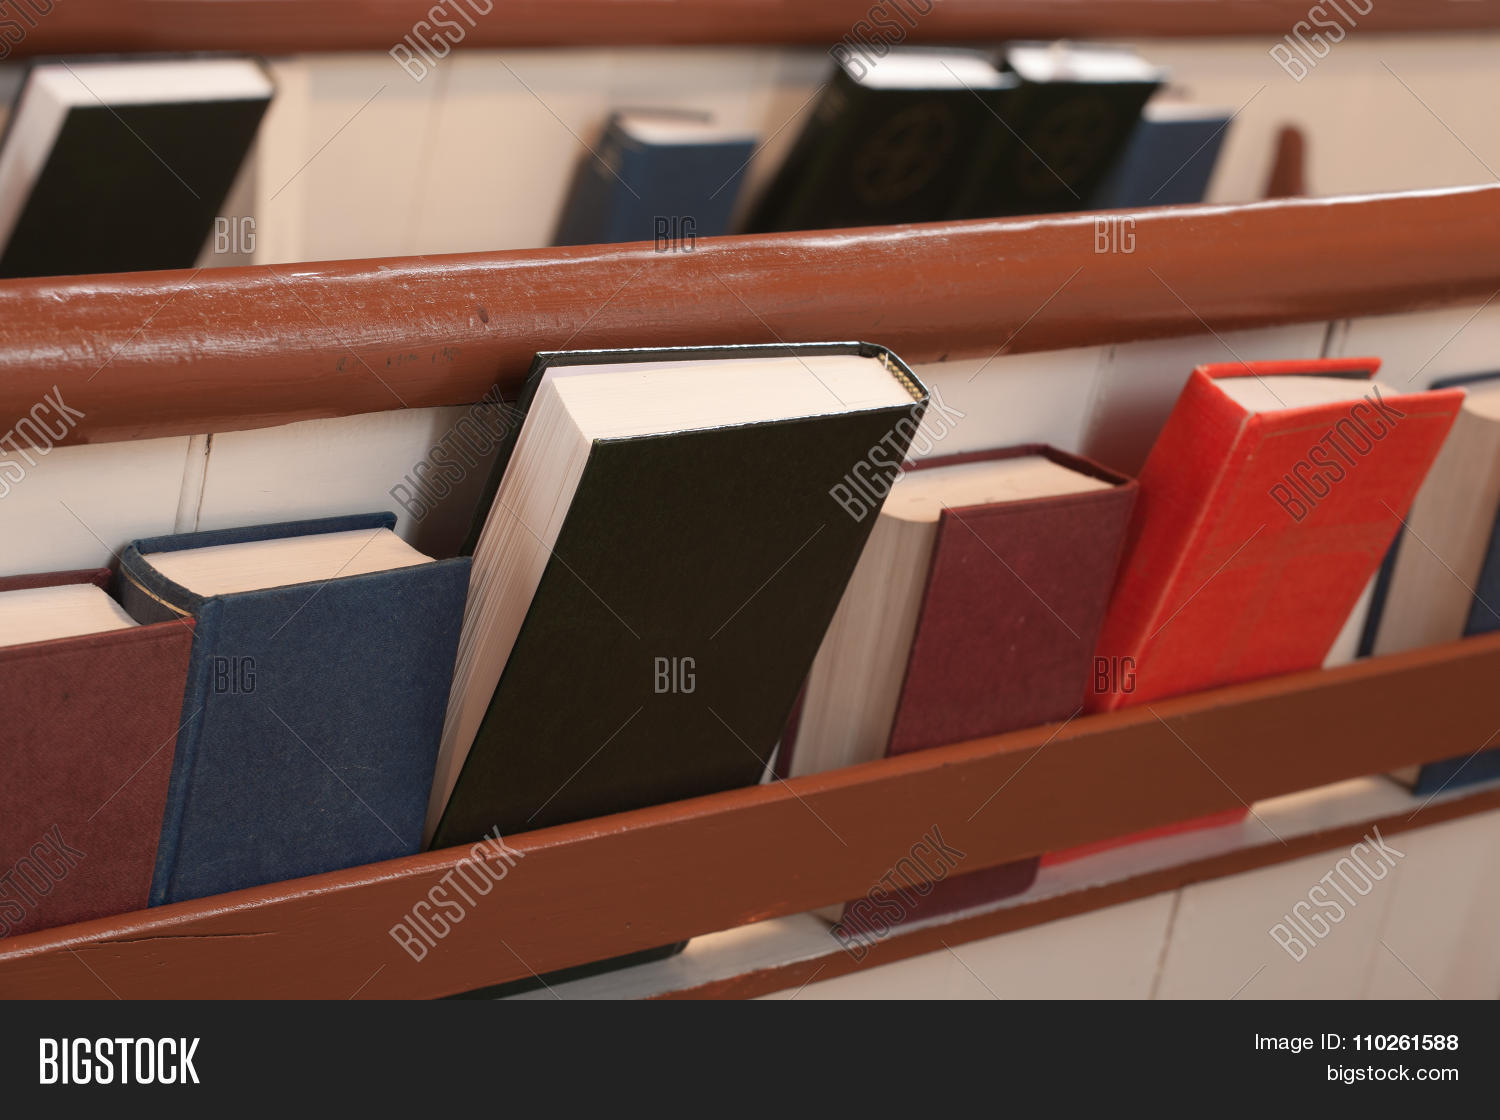 aisle,antique,belief,bench,bible,book,chapel,christ,christian,christianity,church,congregation,empty,faith,family,god,gospel,holy,hymnal,indoor,interior,jesus,lord,nobody,offering,old,parish,peace,pew,pray,prayer,religion,religious,row,sacred,sanctuary,scripture,seat,serenity,service,song,spirit,spiritual,spirituality,sunday,wood,wooden,word,worship